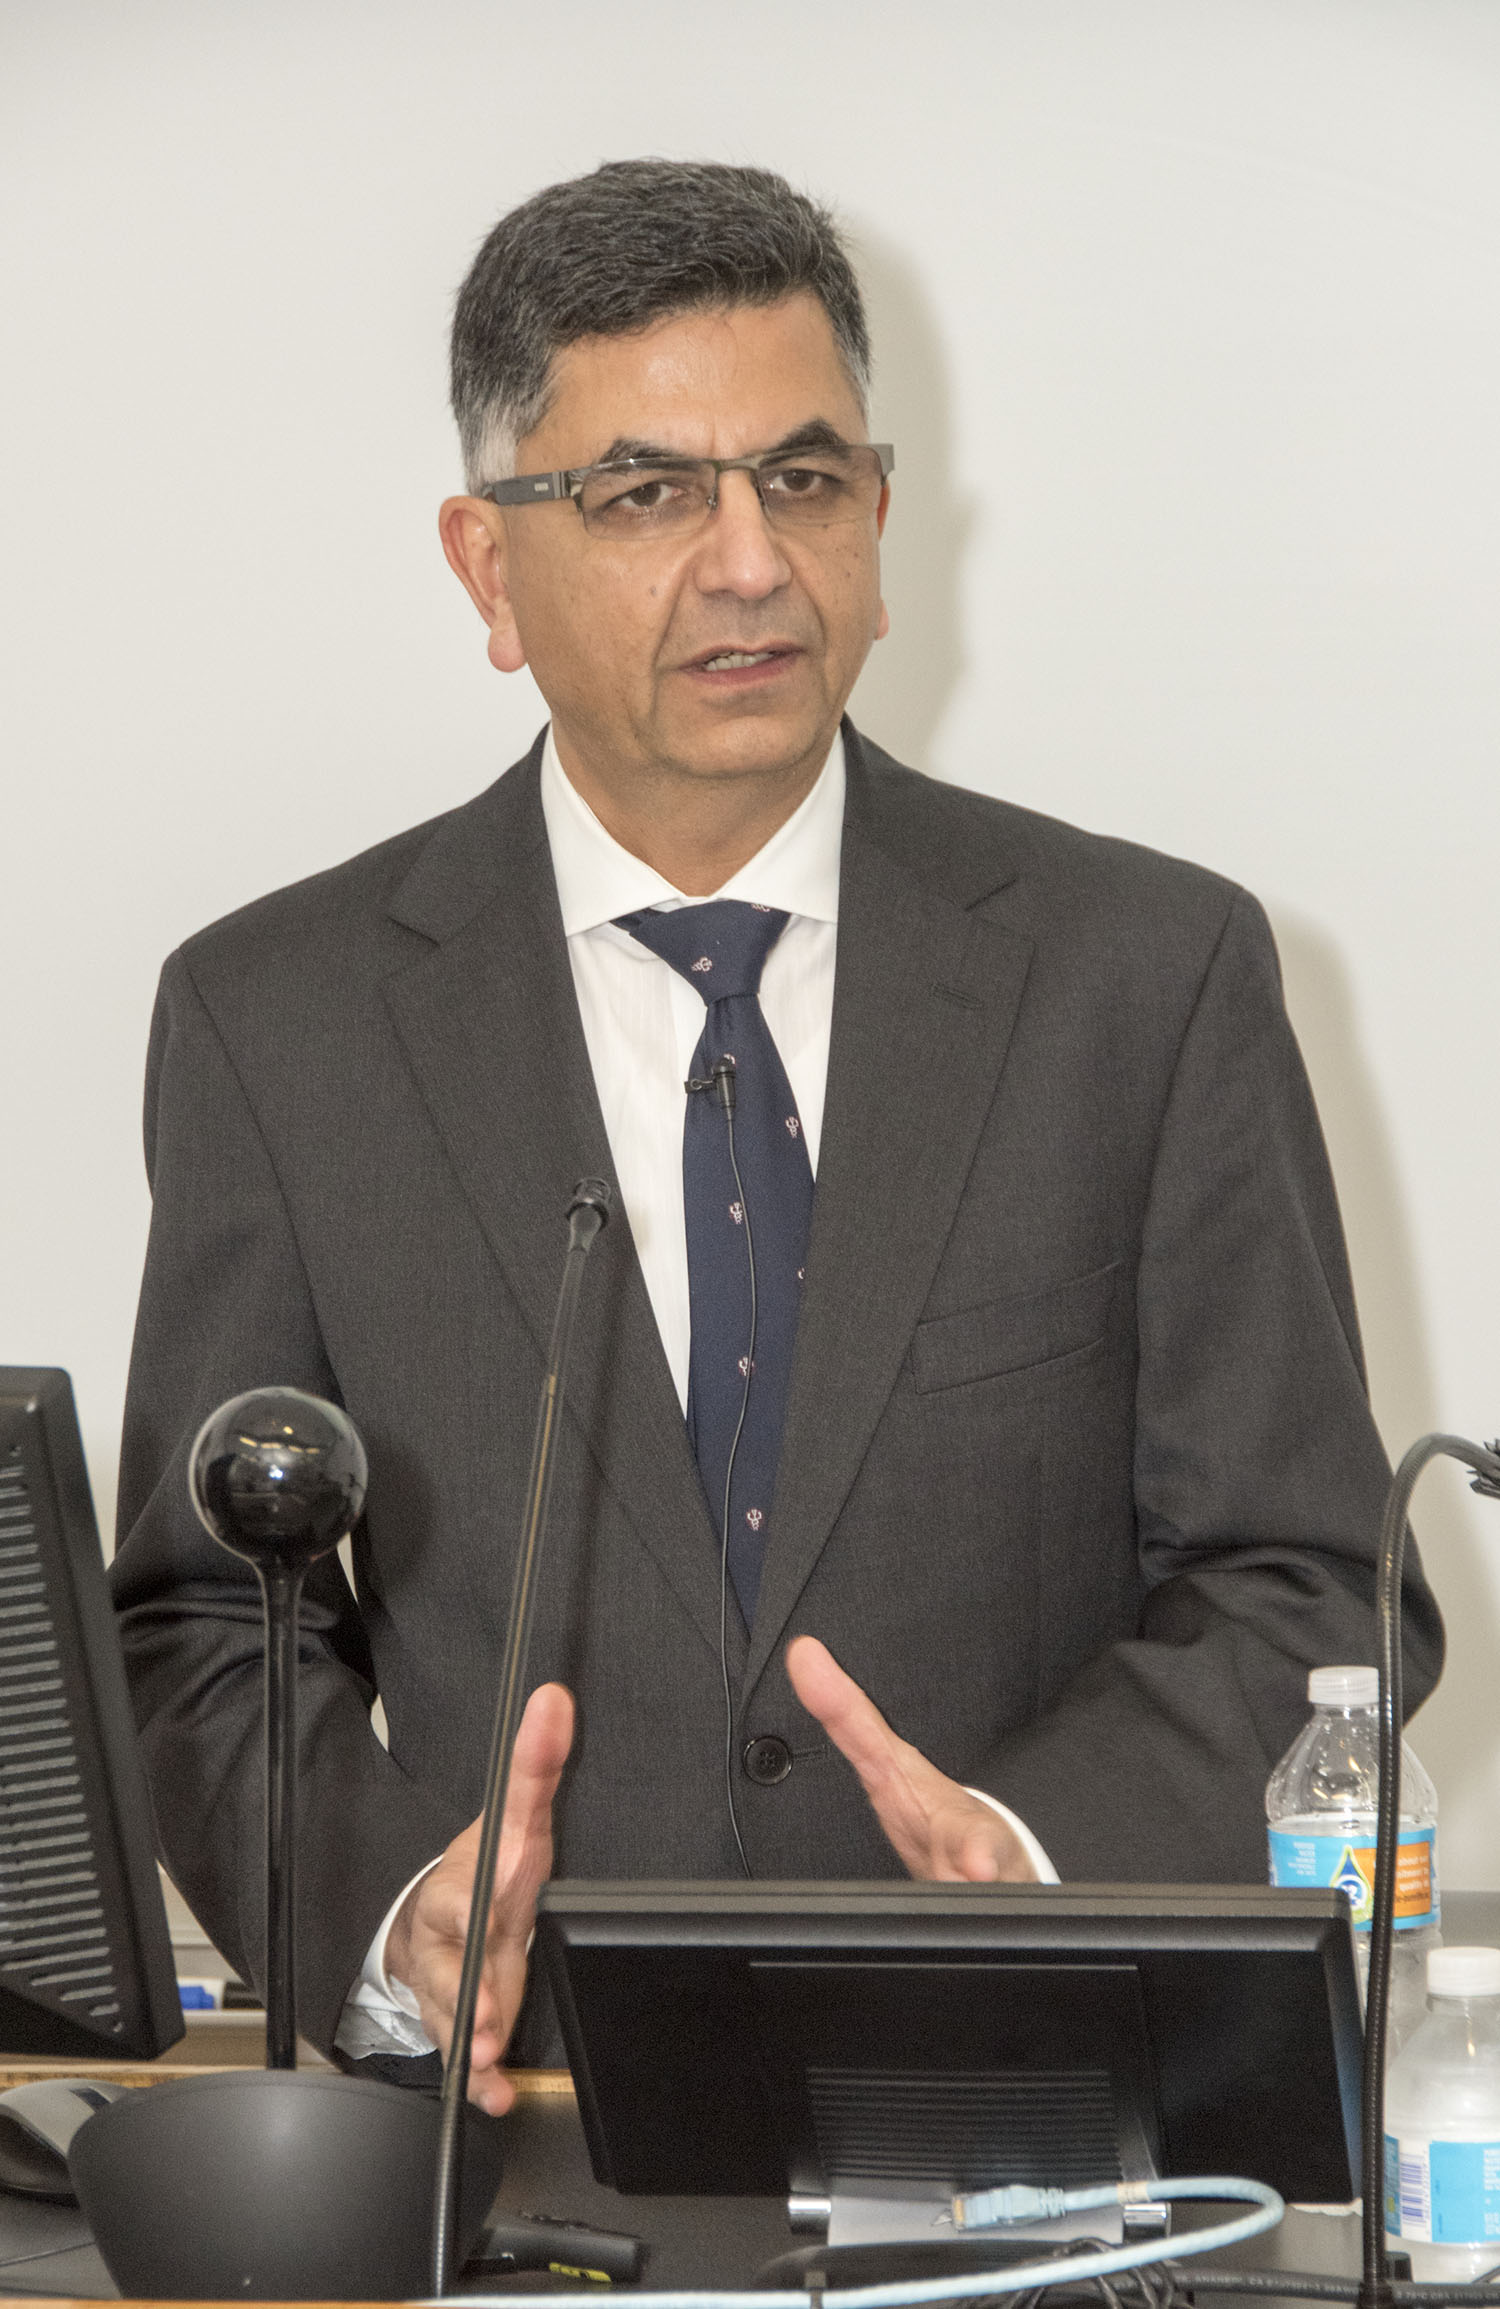 Dr. Shalender Bhasin, M.B., B.S., delivered the 39th address in the Mark Dodge, M.D., Lectureship.